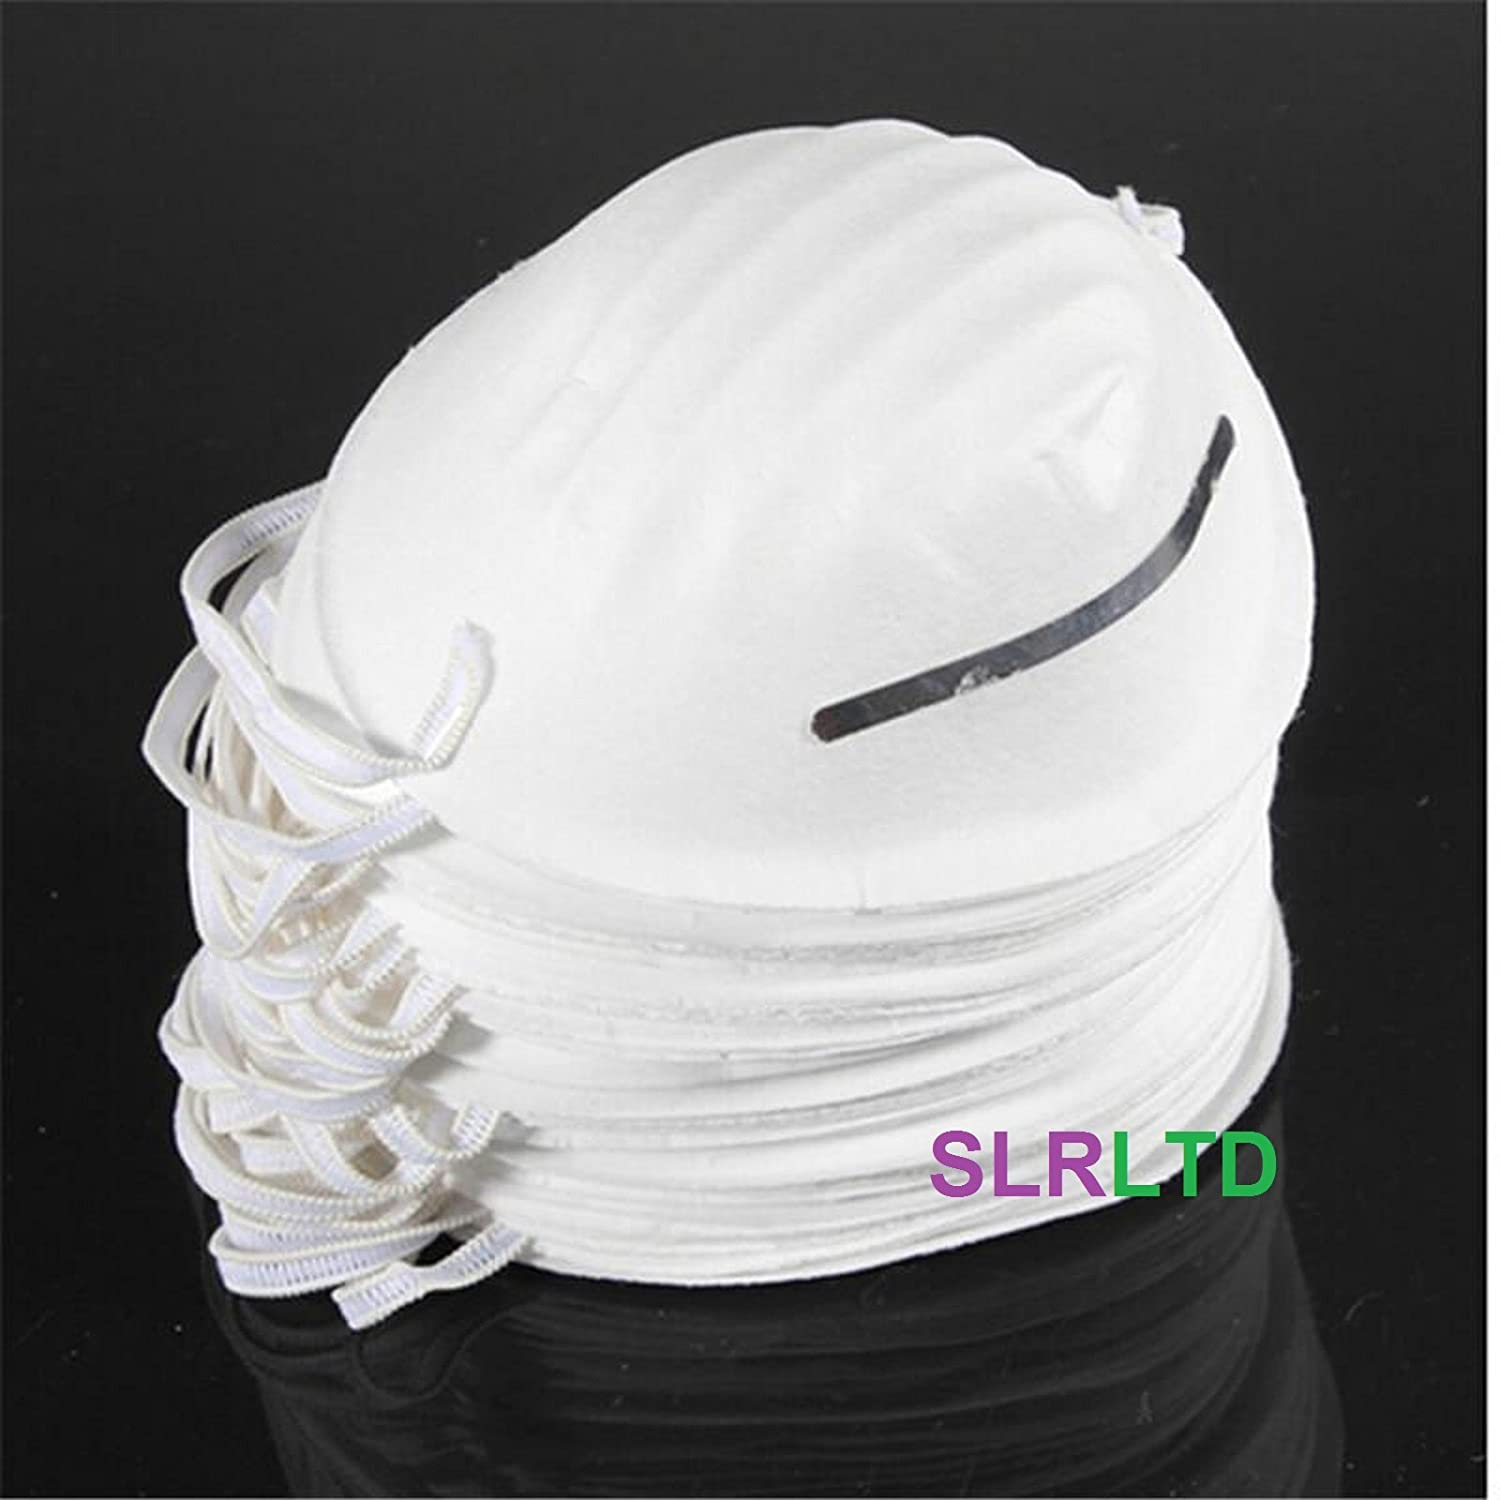 50 x DISPOSABLE NUISANCE DUST FACE MASKS - FREE DELIVERY SLR LTD